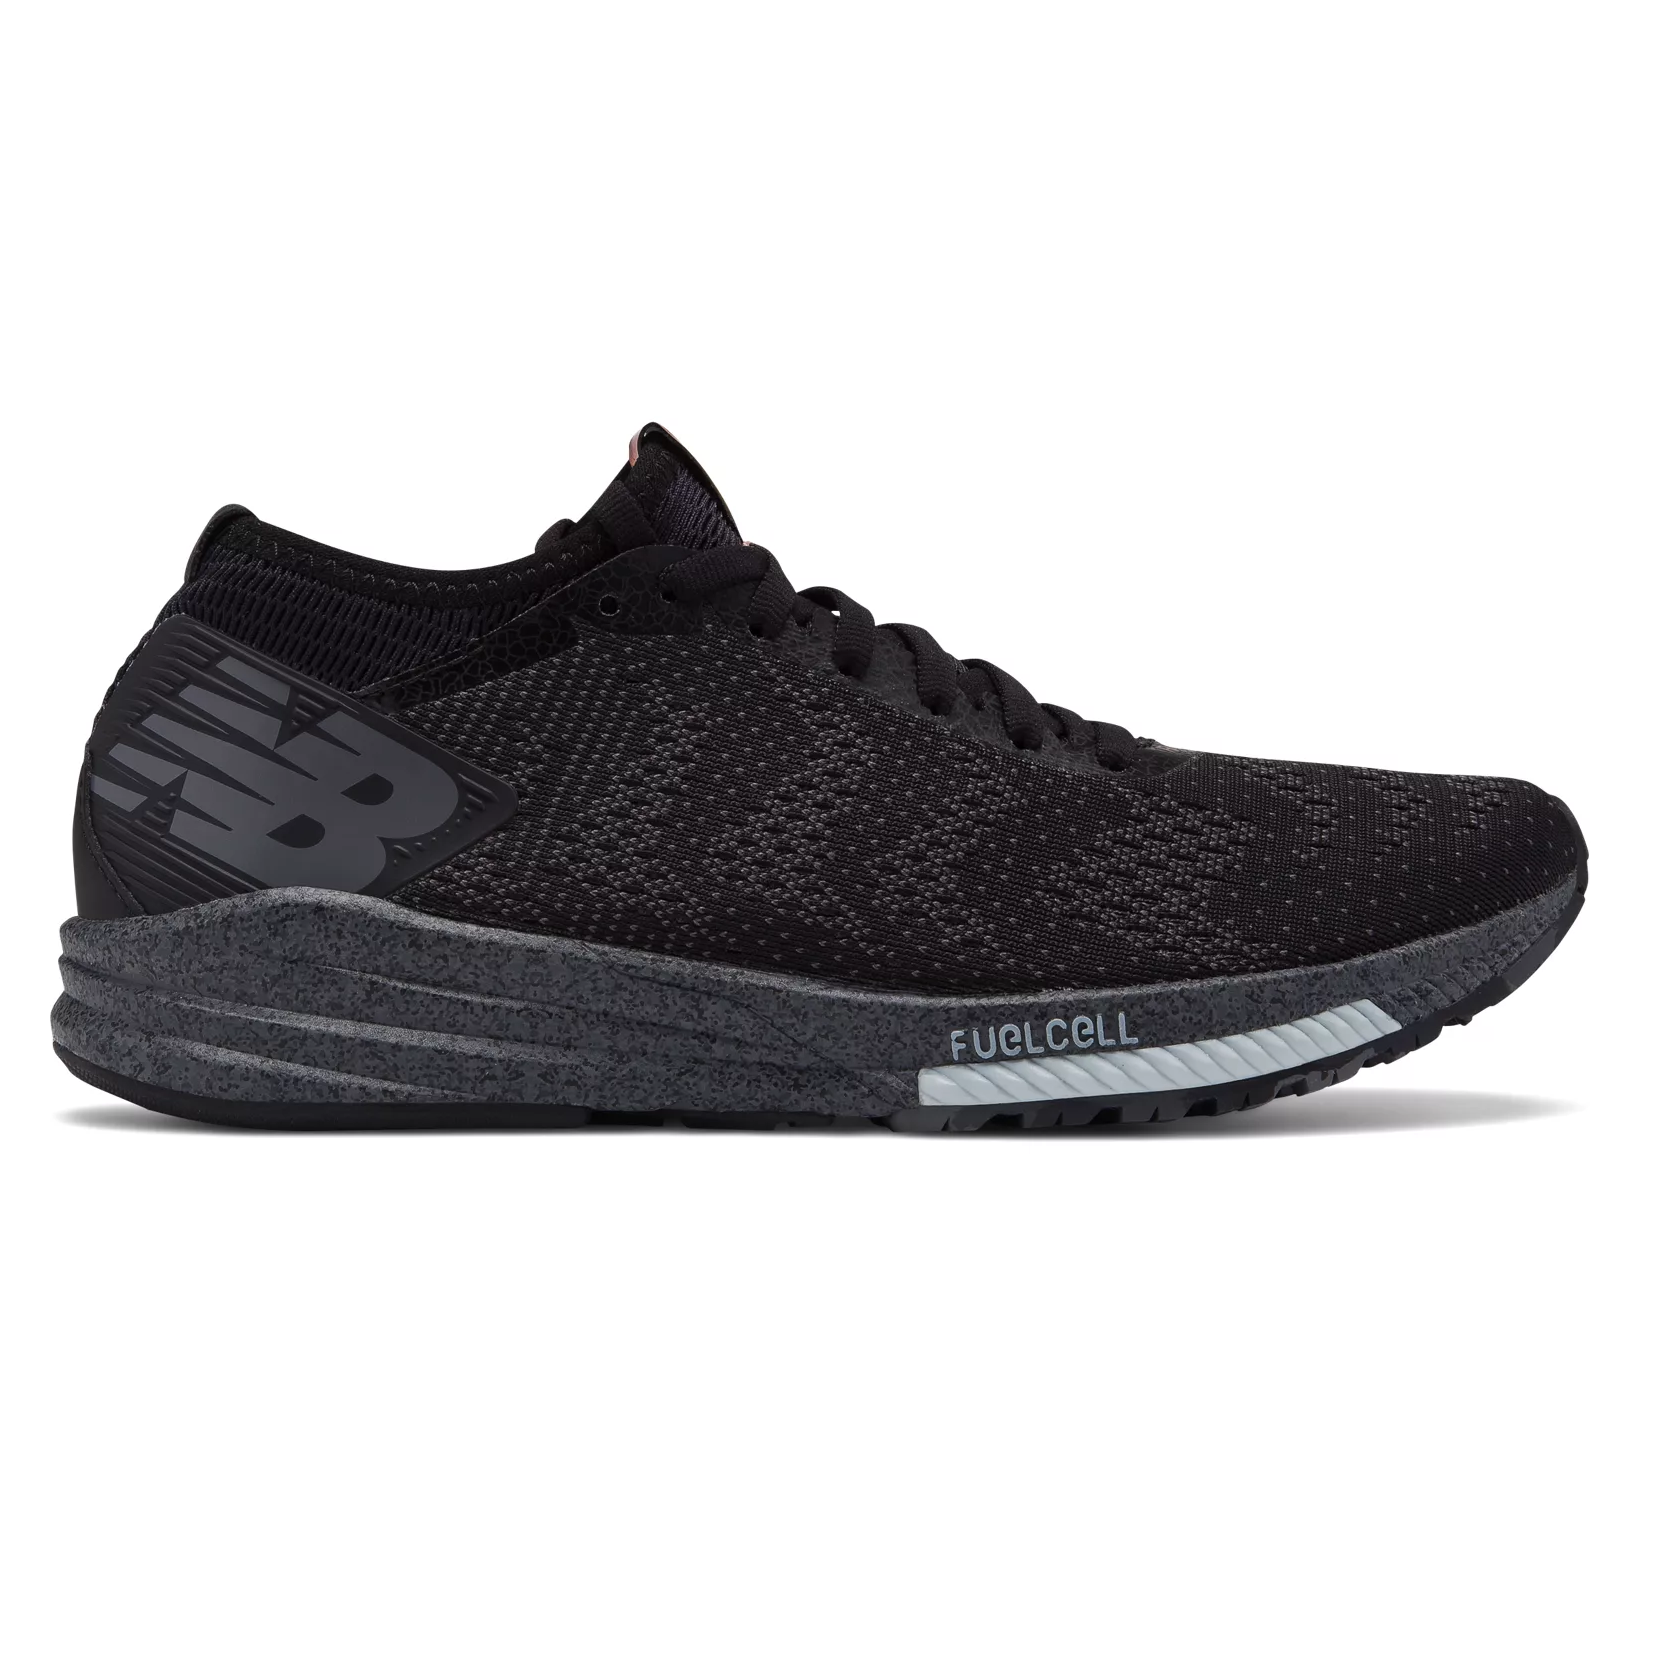 New Balance FuelCell Impulse NYC Marathon herre